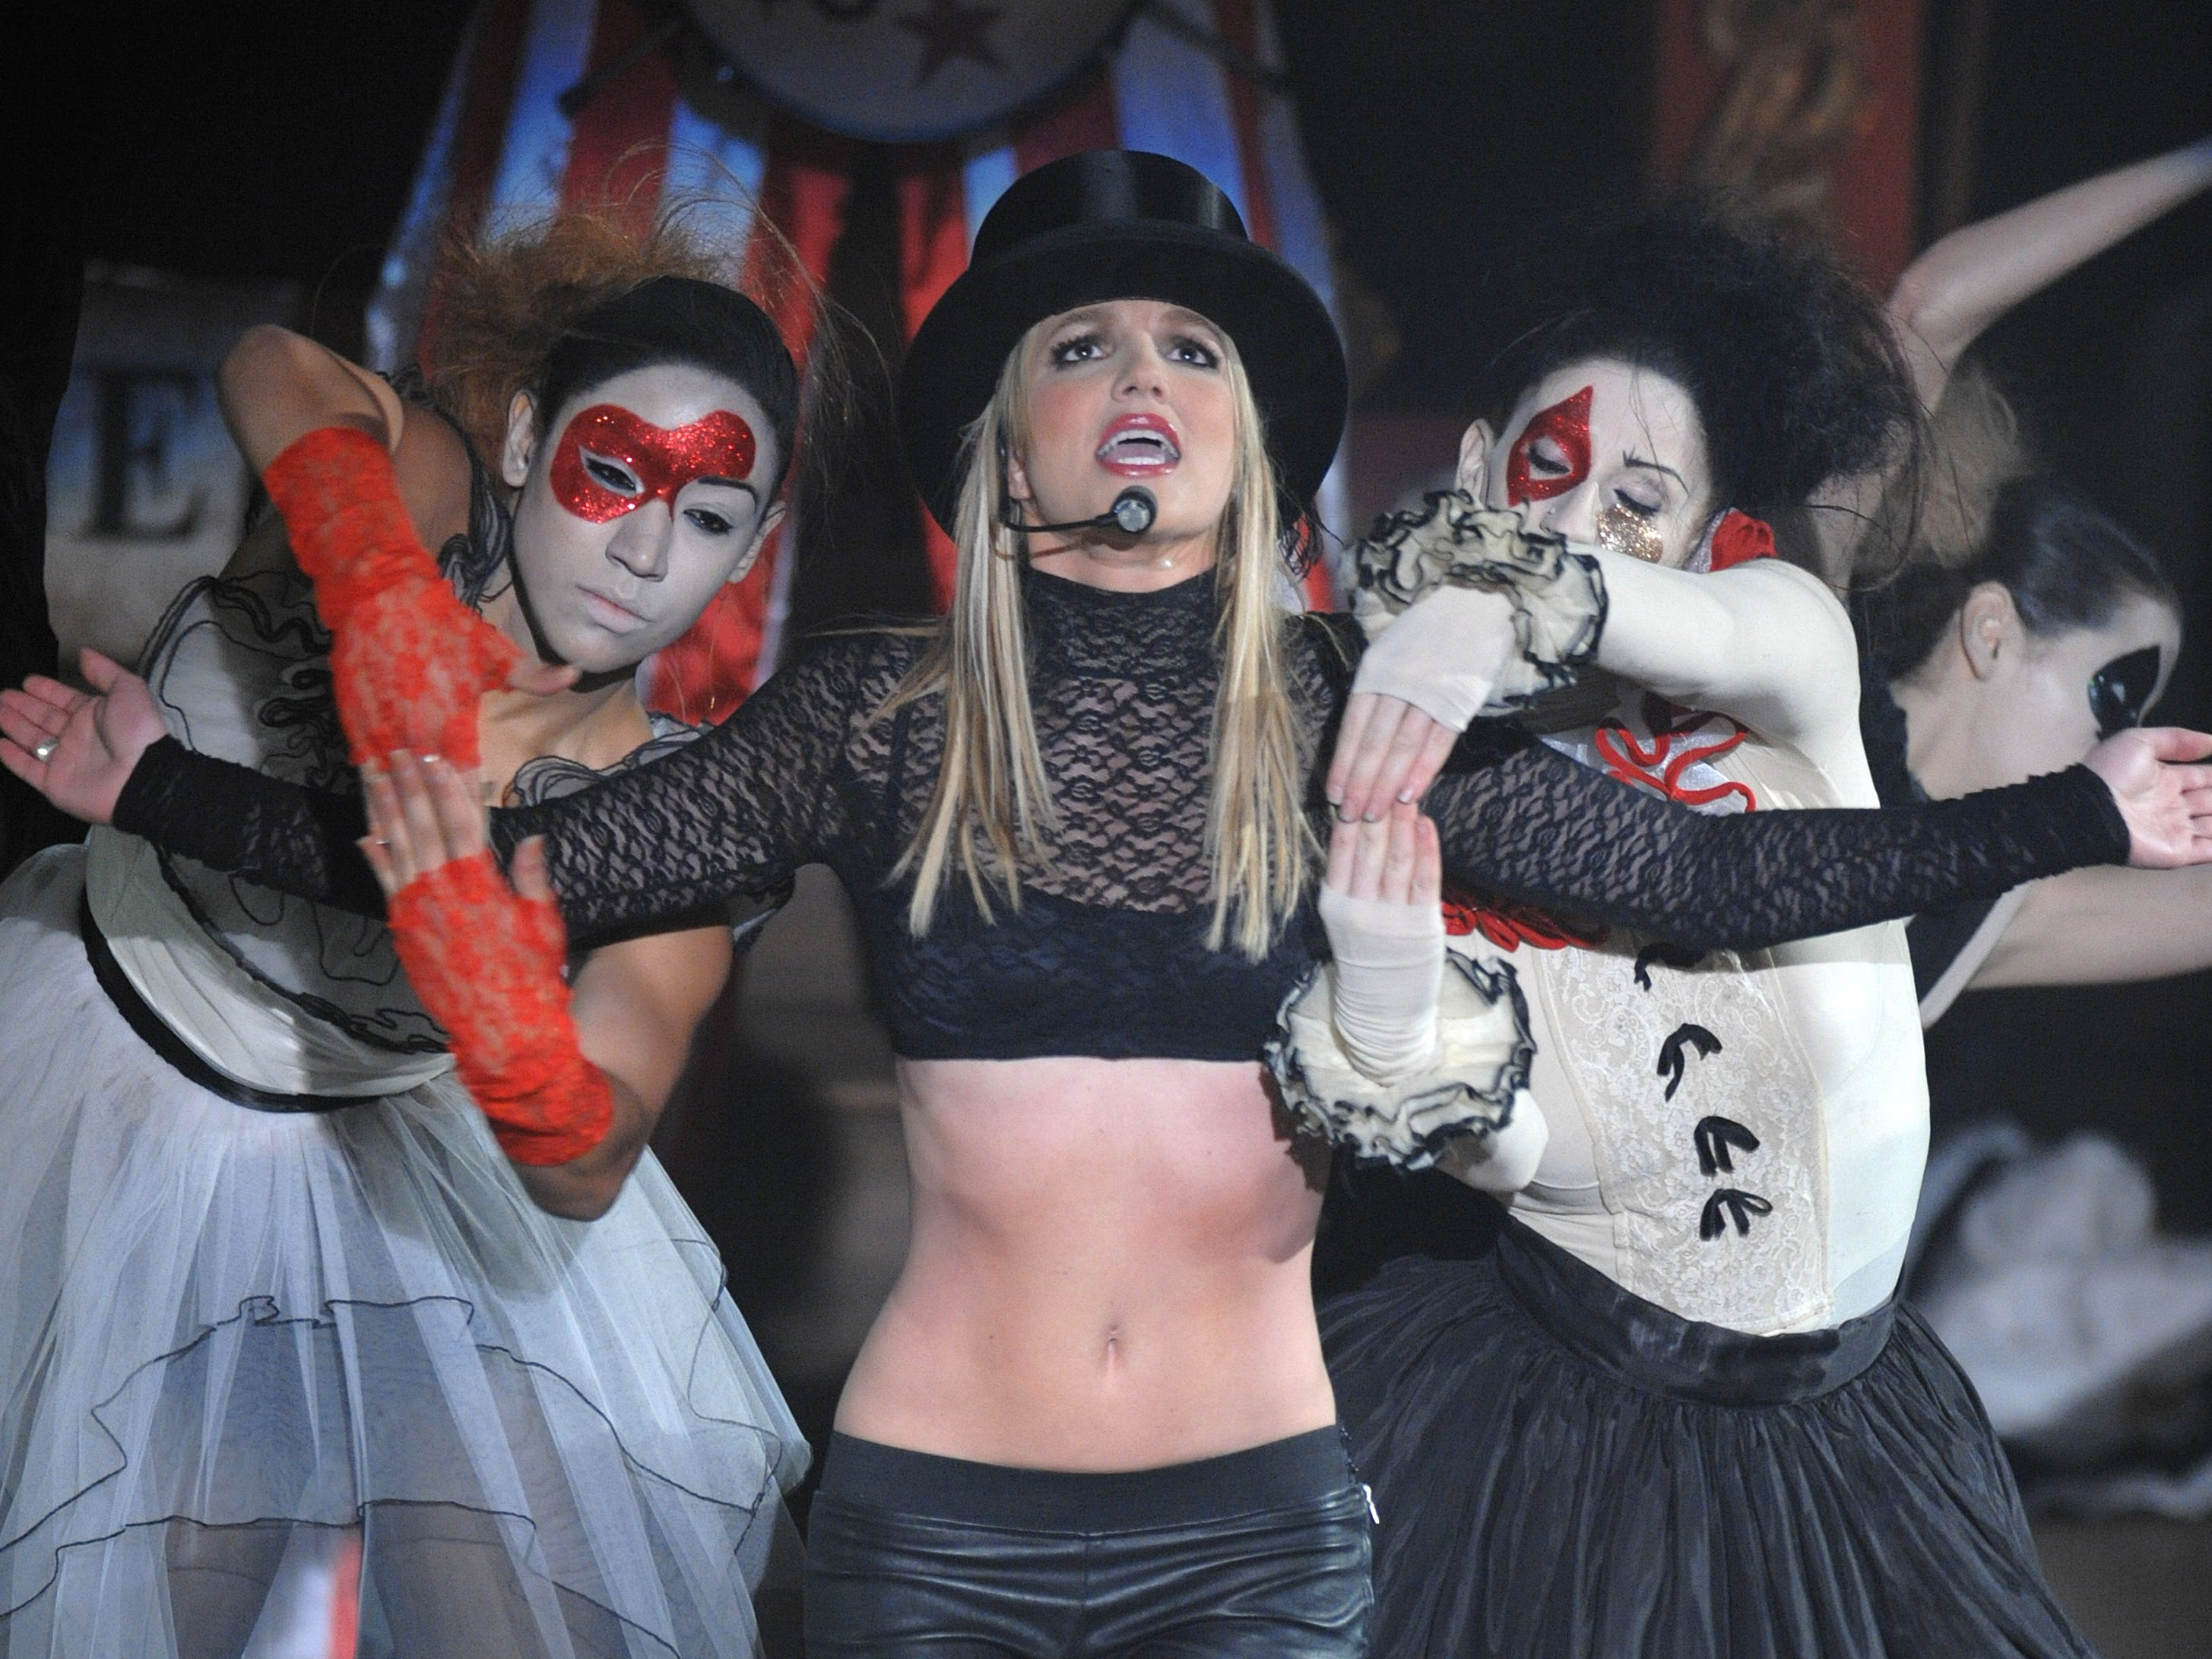 """Singer Britney Spears performs on ABC's """"Good Morning America"""" show at the Big Apple Circus in New York on Tuesday, Dec. 2, 2008. (AP Photo/Peter Kramer) ORG XMIT: NYPK101"""